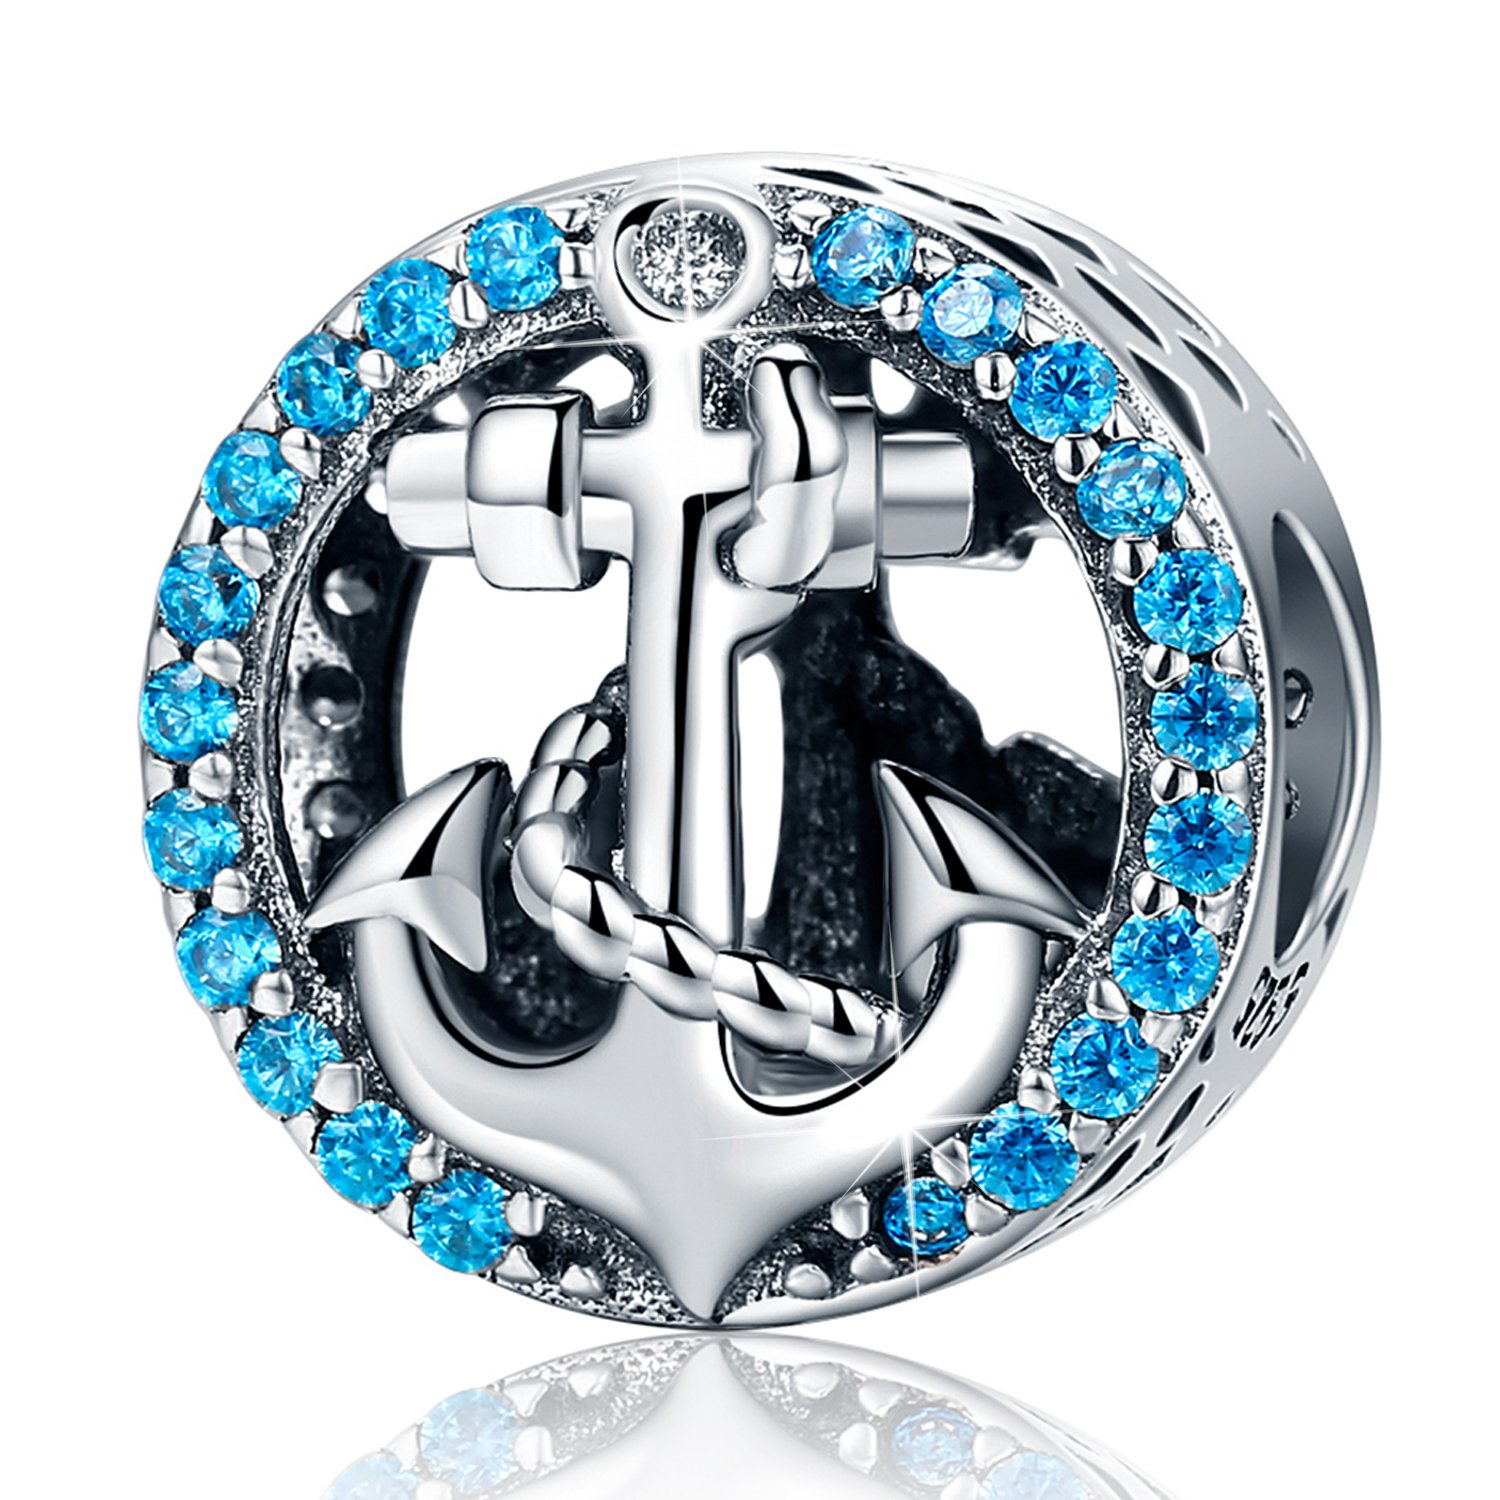 XingYue Jewelry S925 Sterling Silver Boat Anchor Bead Charm,Nautical Anchor Crystal Charm Bead fit Women Charms Bracelets (Nautical Anchor Charm Bead)